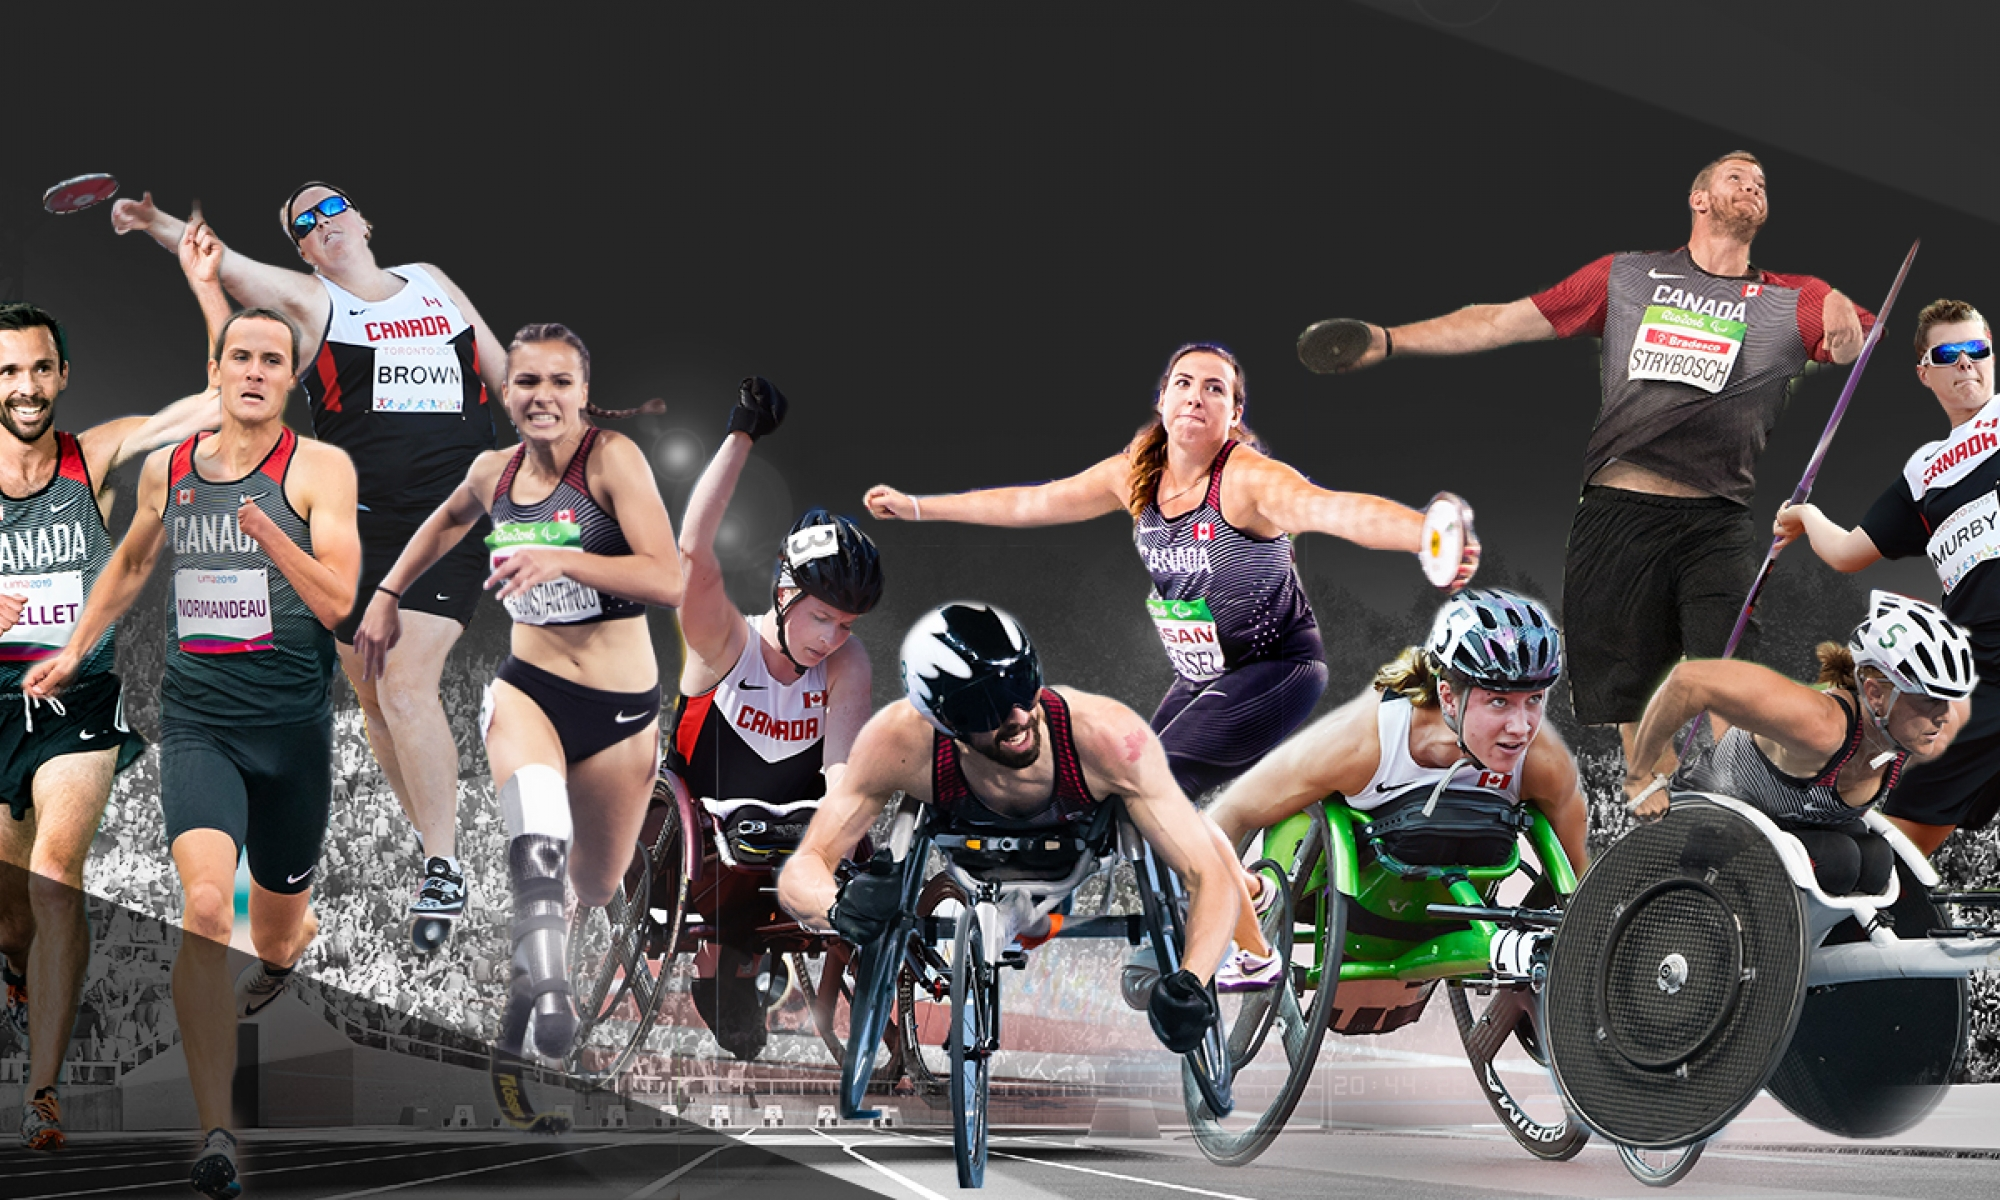 collage of athletics athletes competing